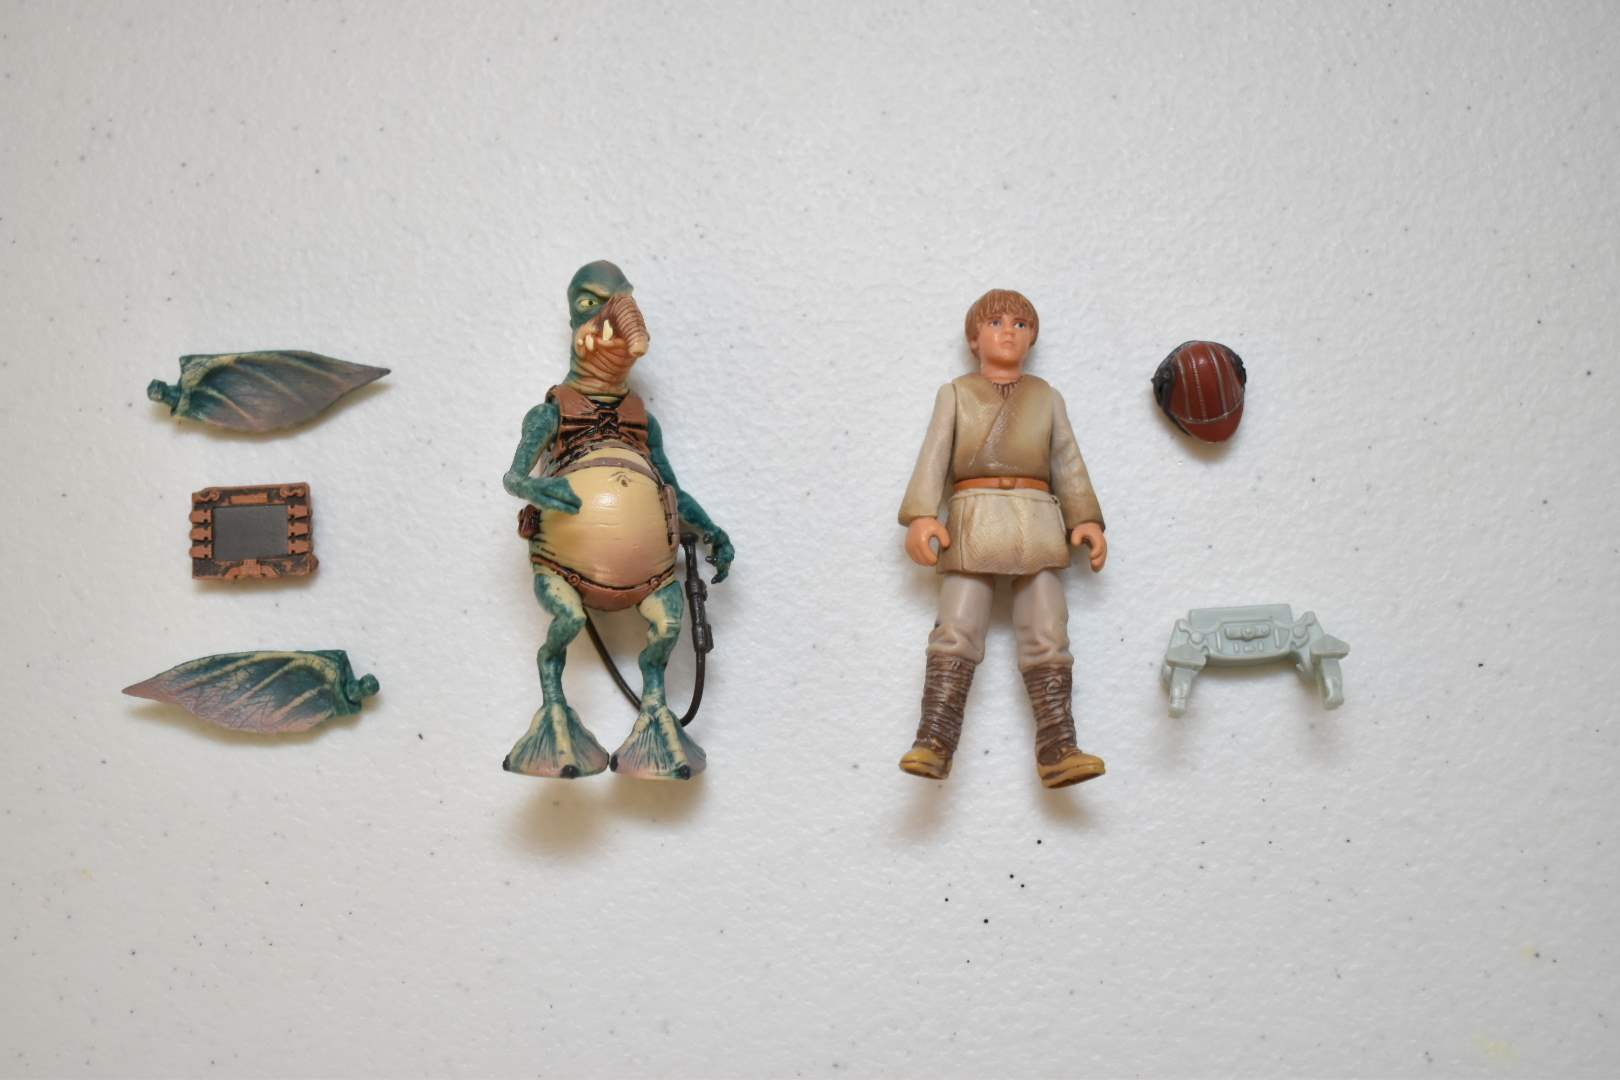 Vintage STAR WARS Young Anakin Skywalker and Watto